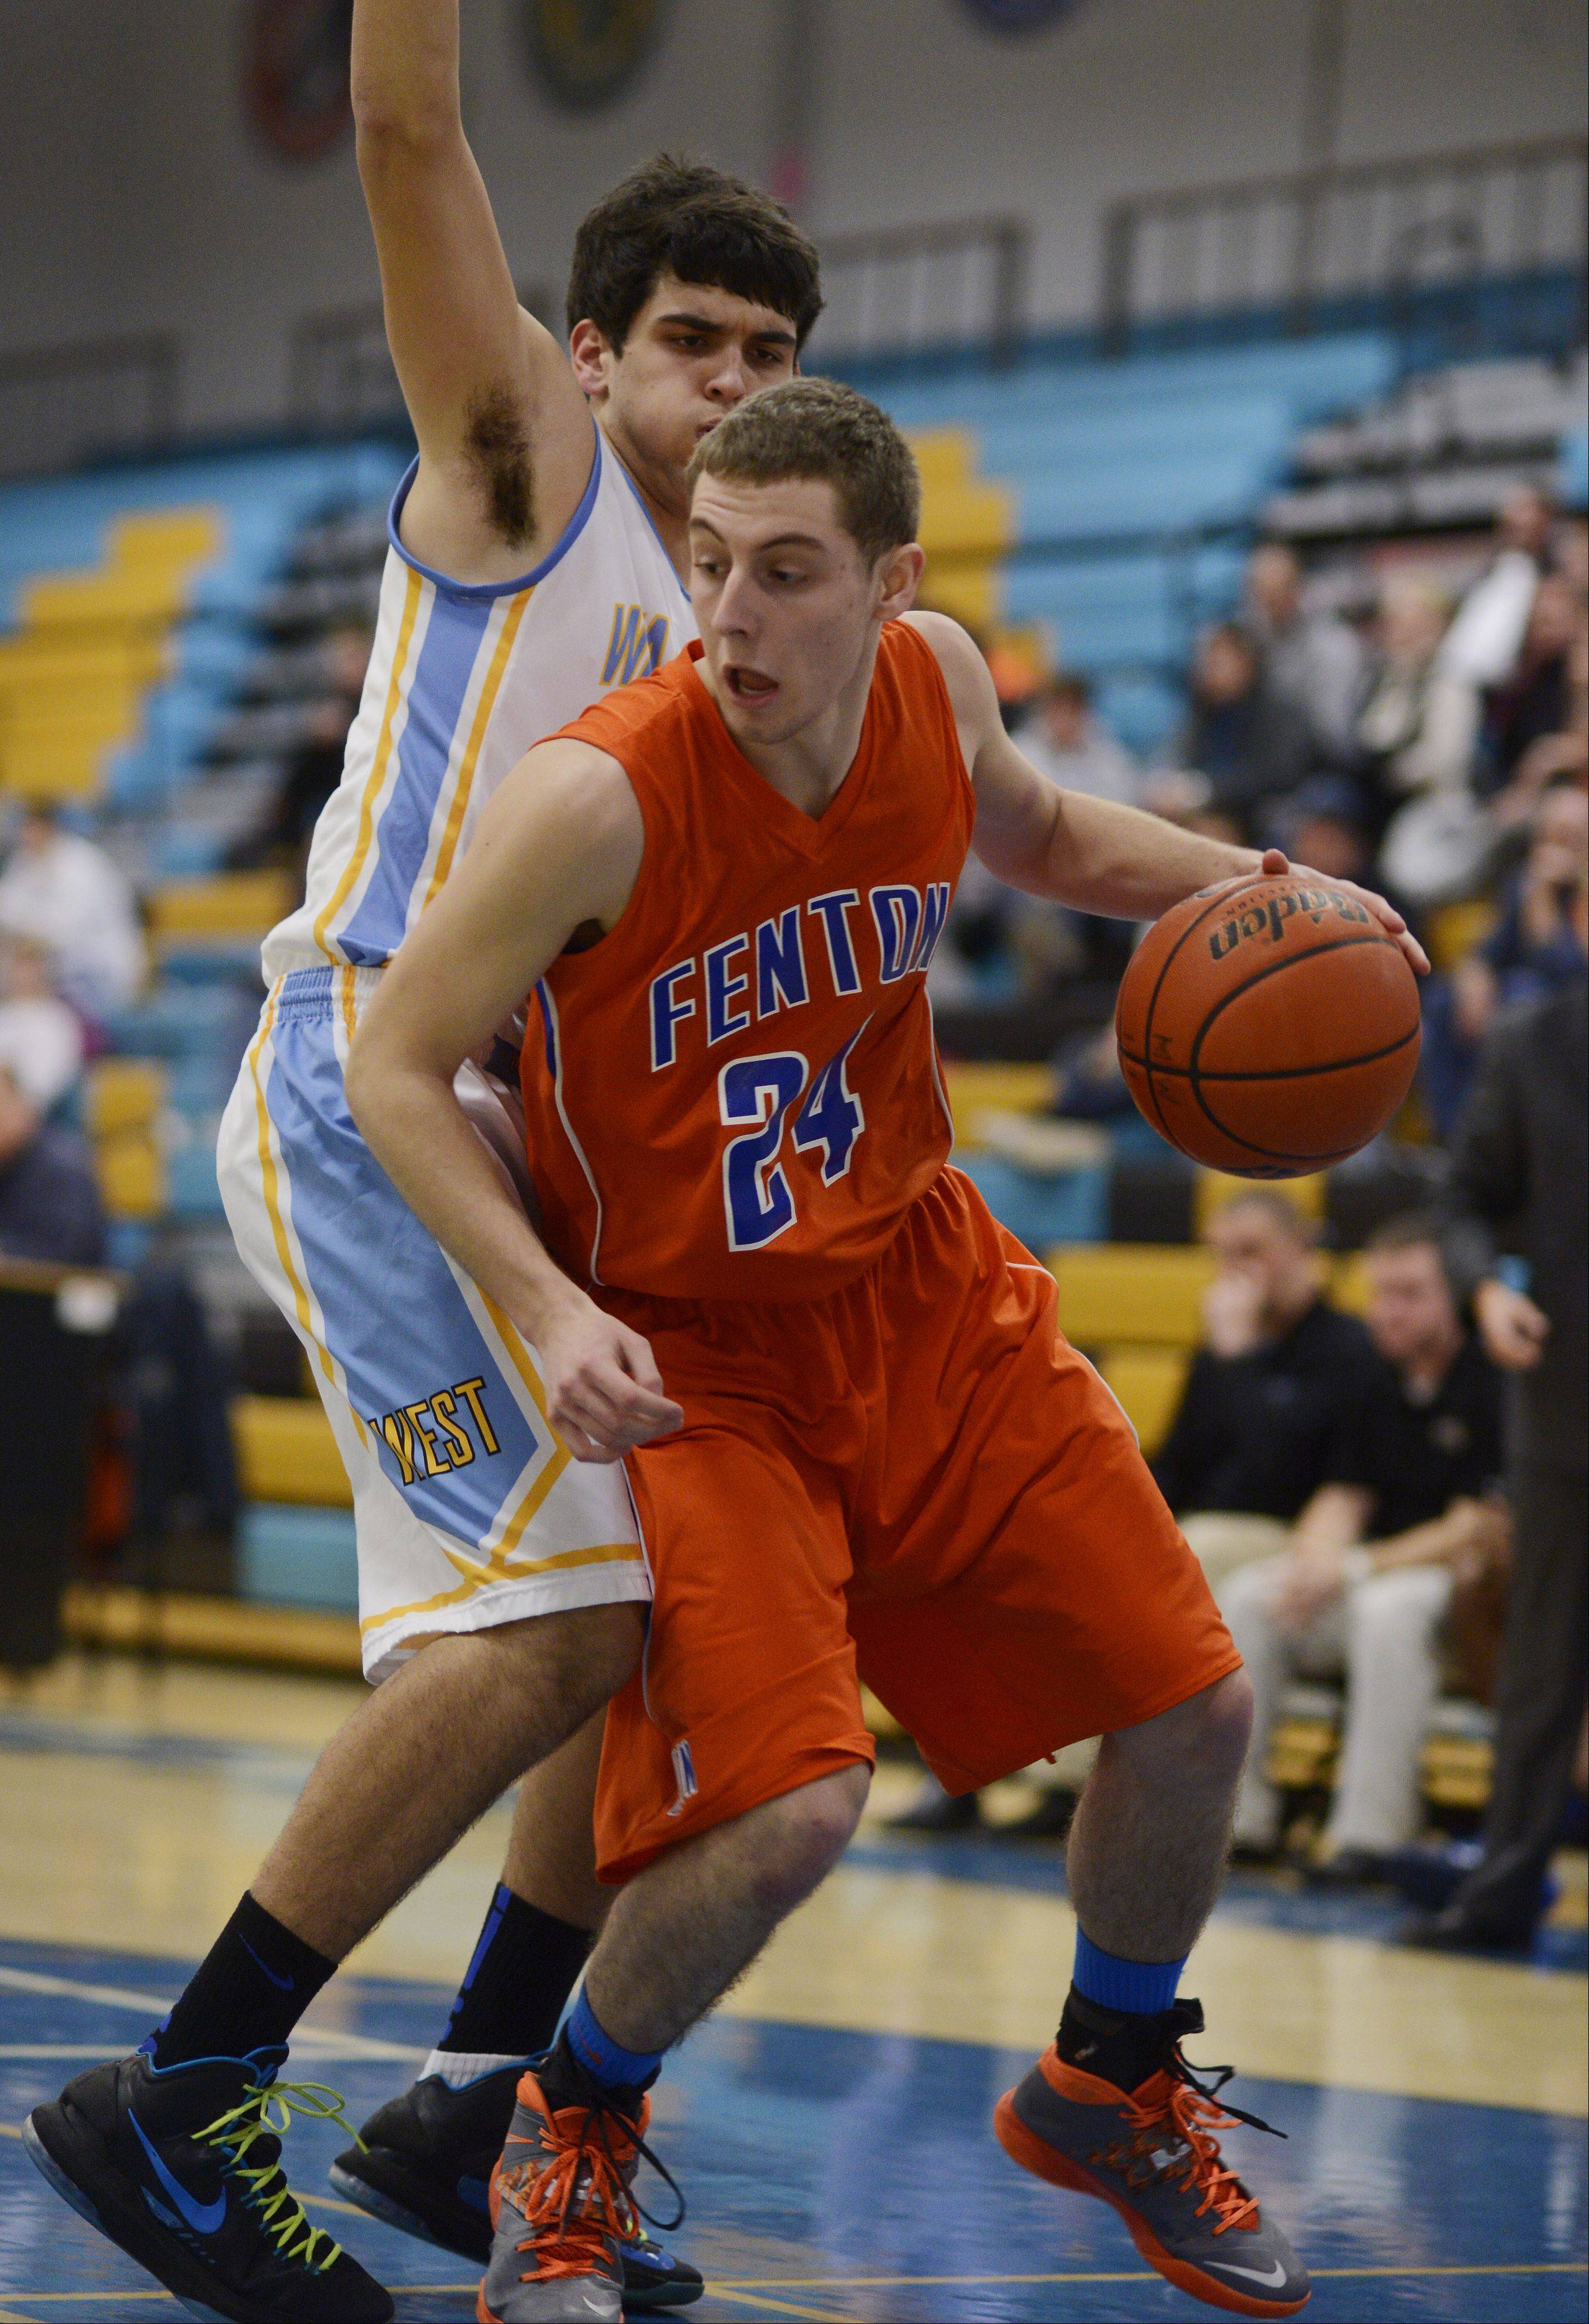 Fenton's Rob Kik, front, looks for room along the baseline against Maine West defender Matt Acevedo during Tuesday's game in Des Plaines.